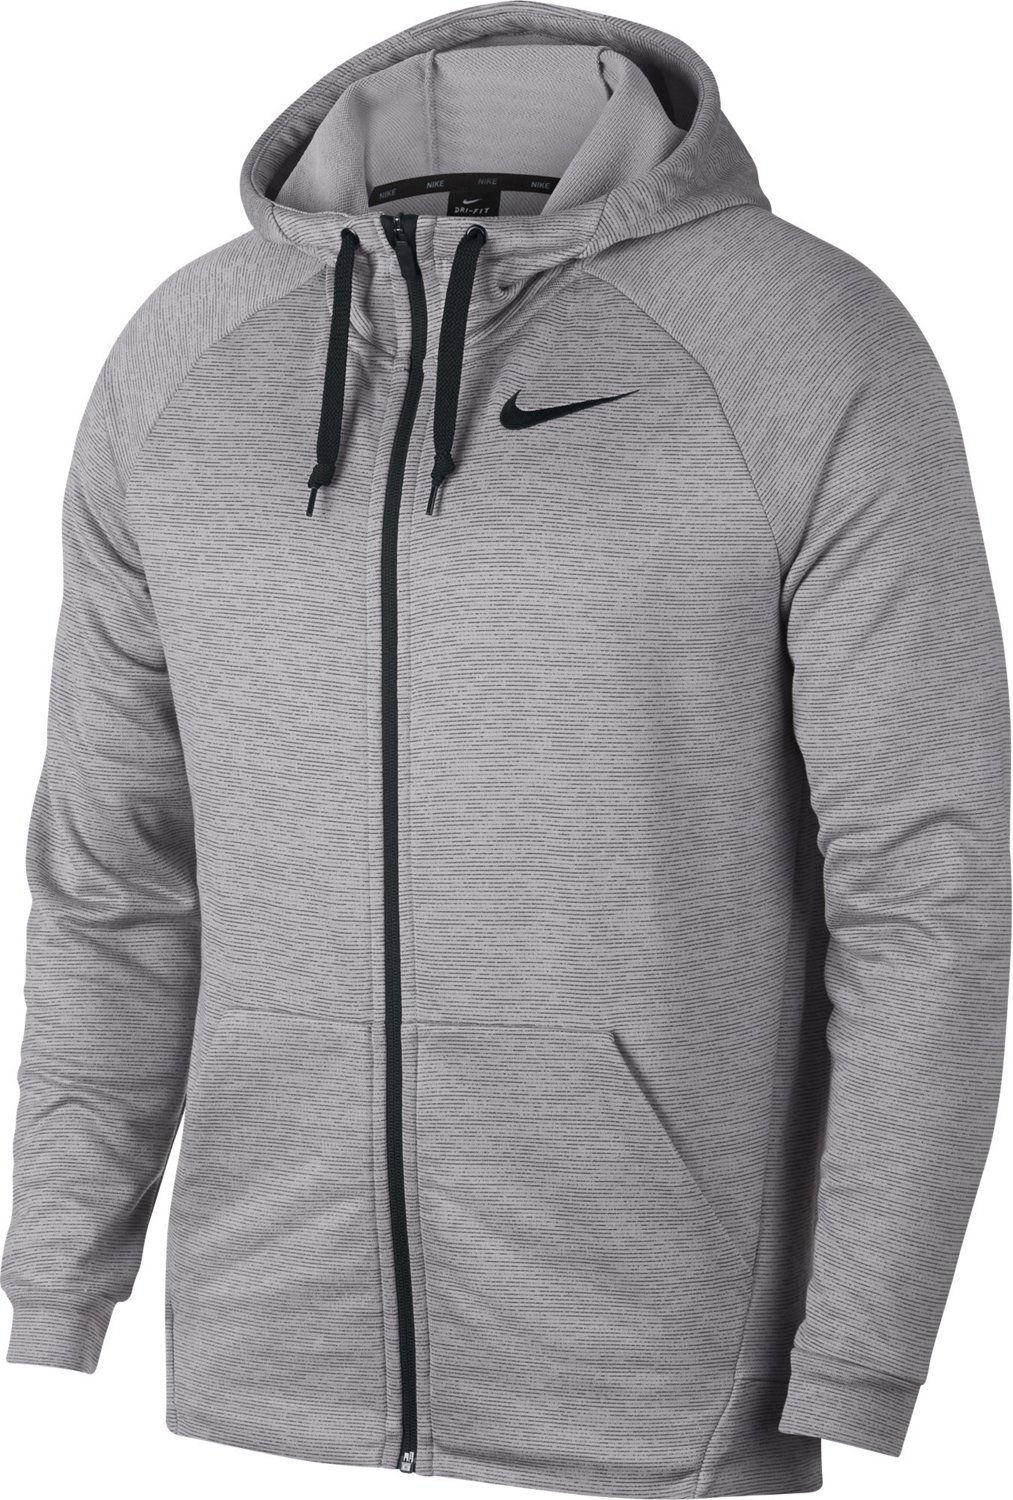 c2f2e46de9 Display product reviews for Nike Men s Dry Training Hoodie